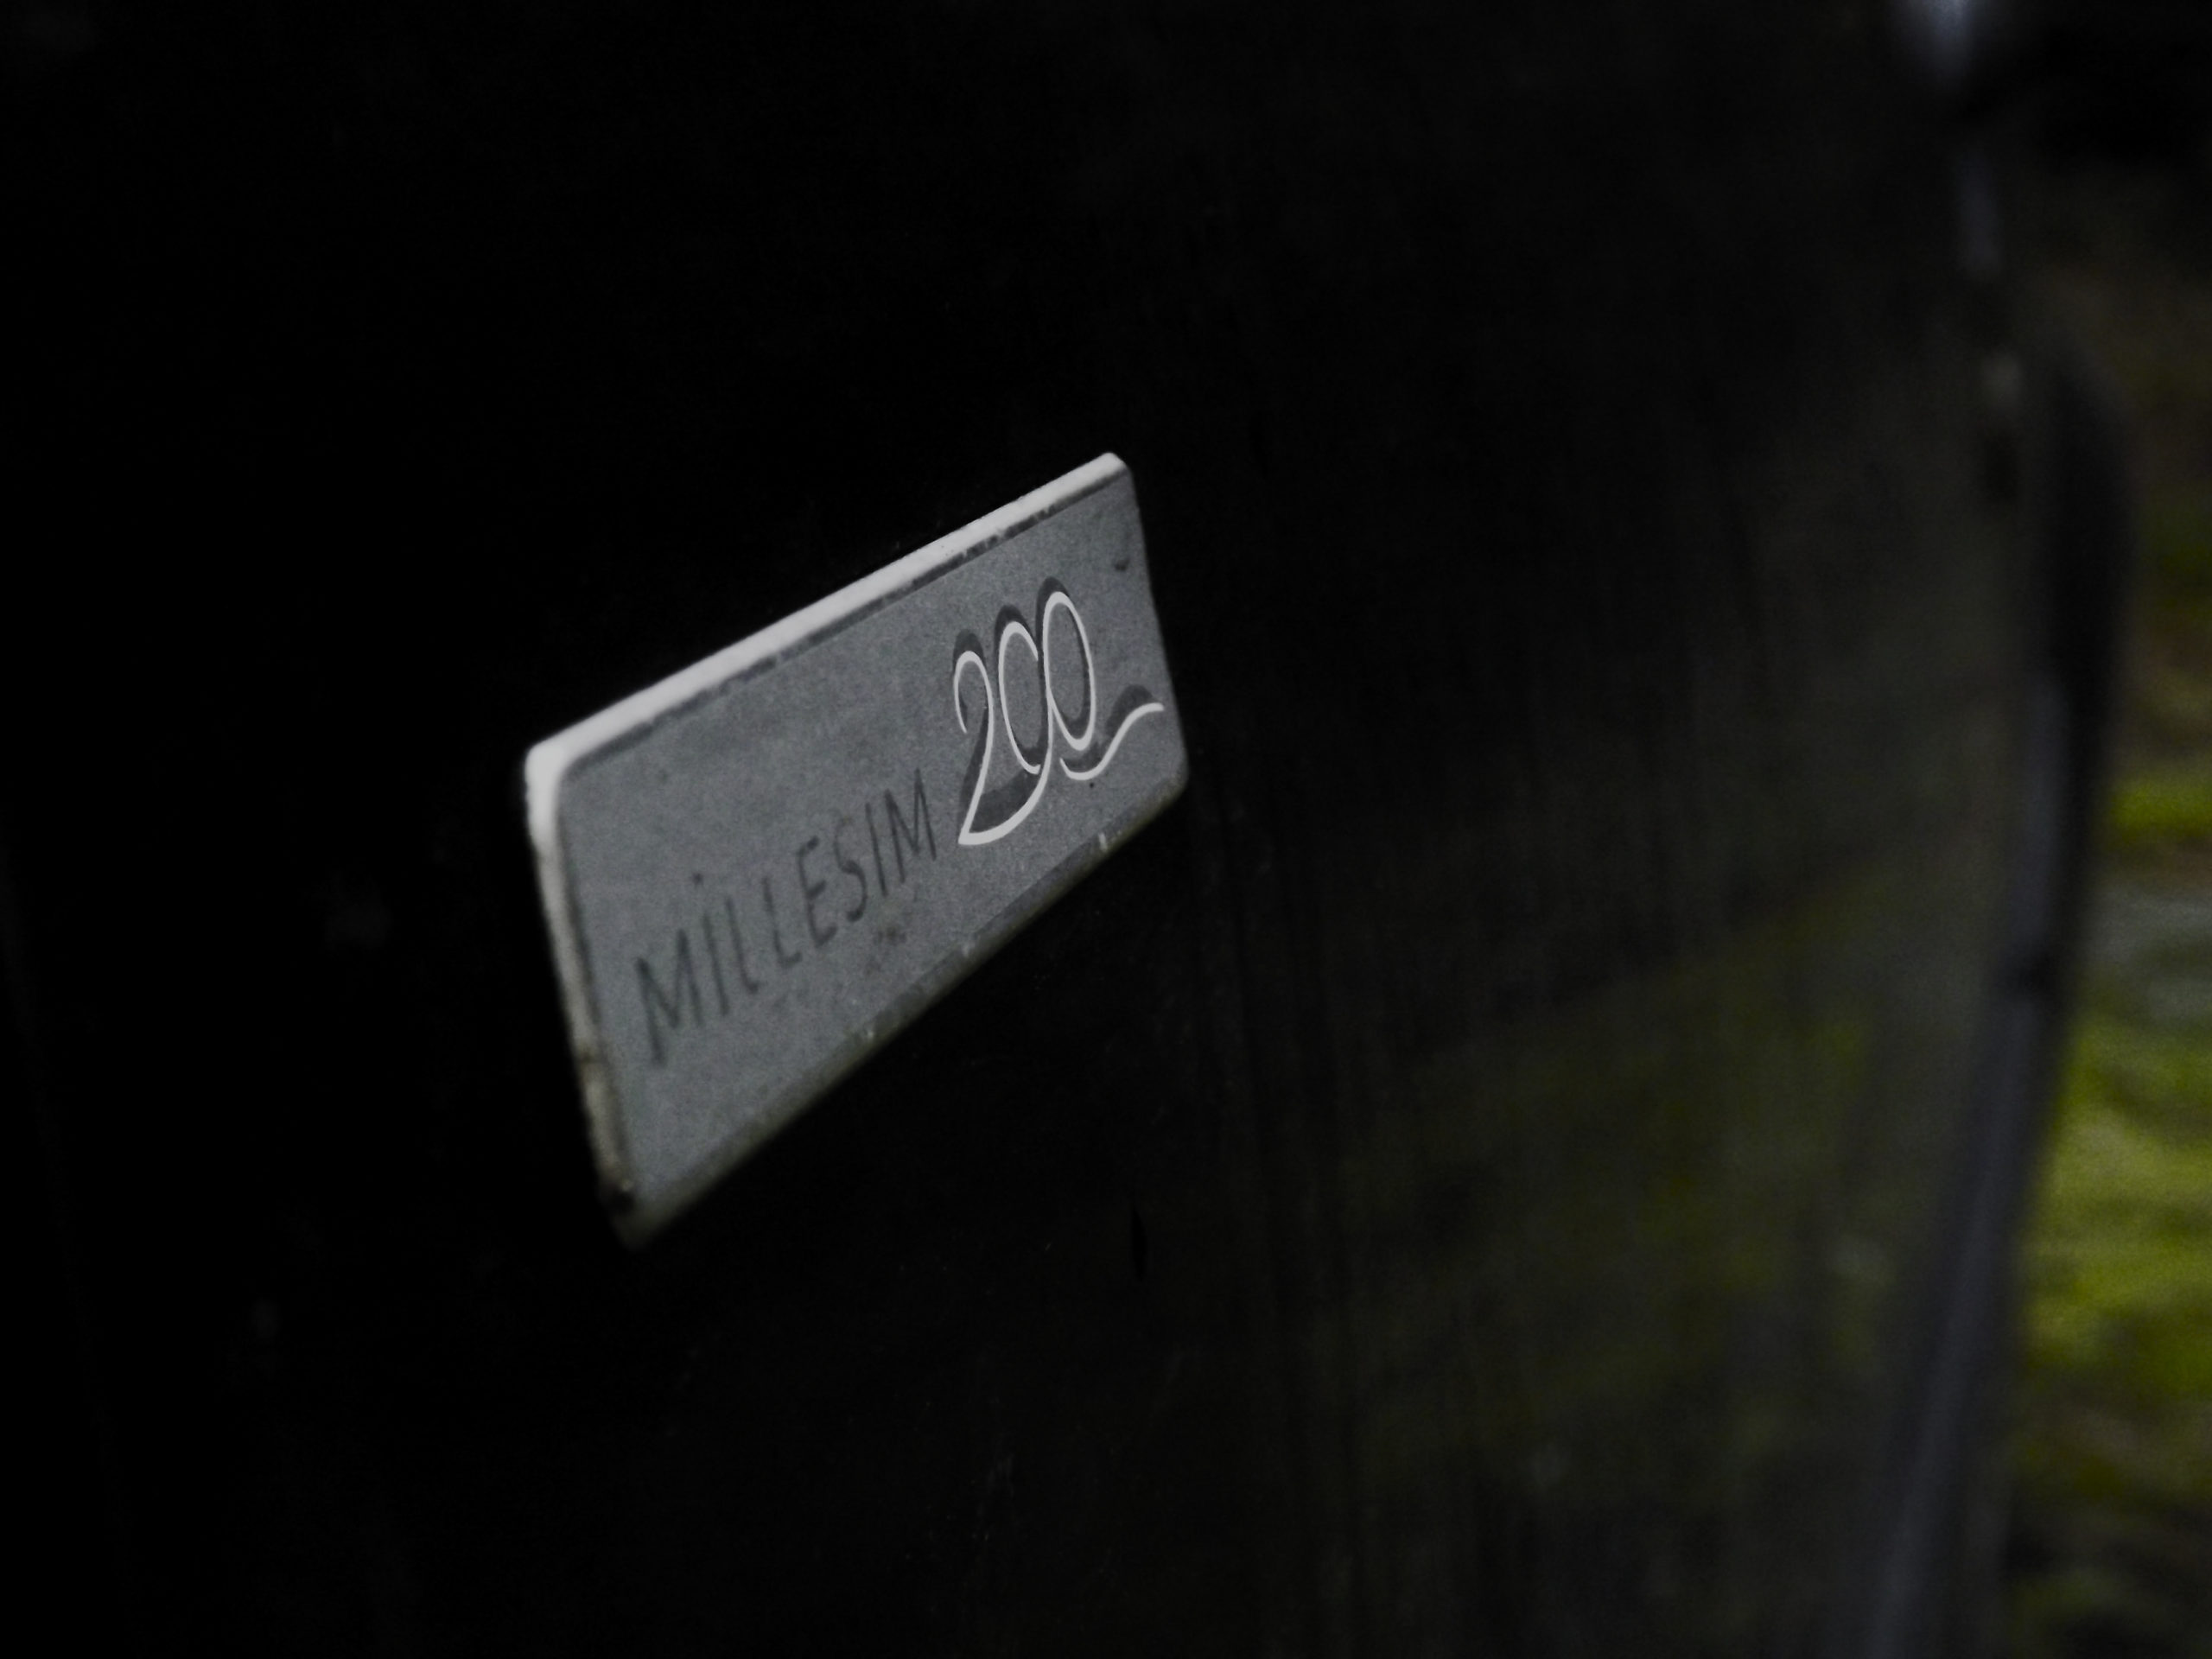 """My Peugeot 107 is a """"Special Edition"""" Millesim 200, celebrating 200 years of Peugeot."""